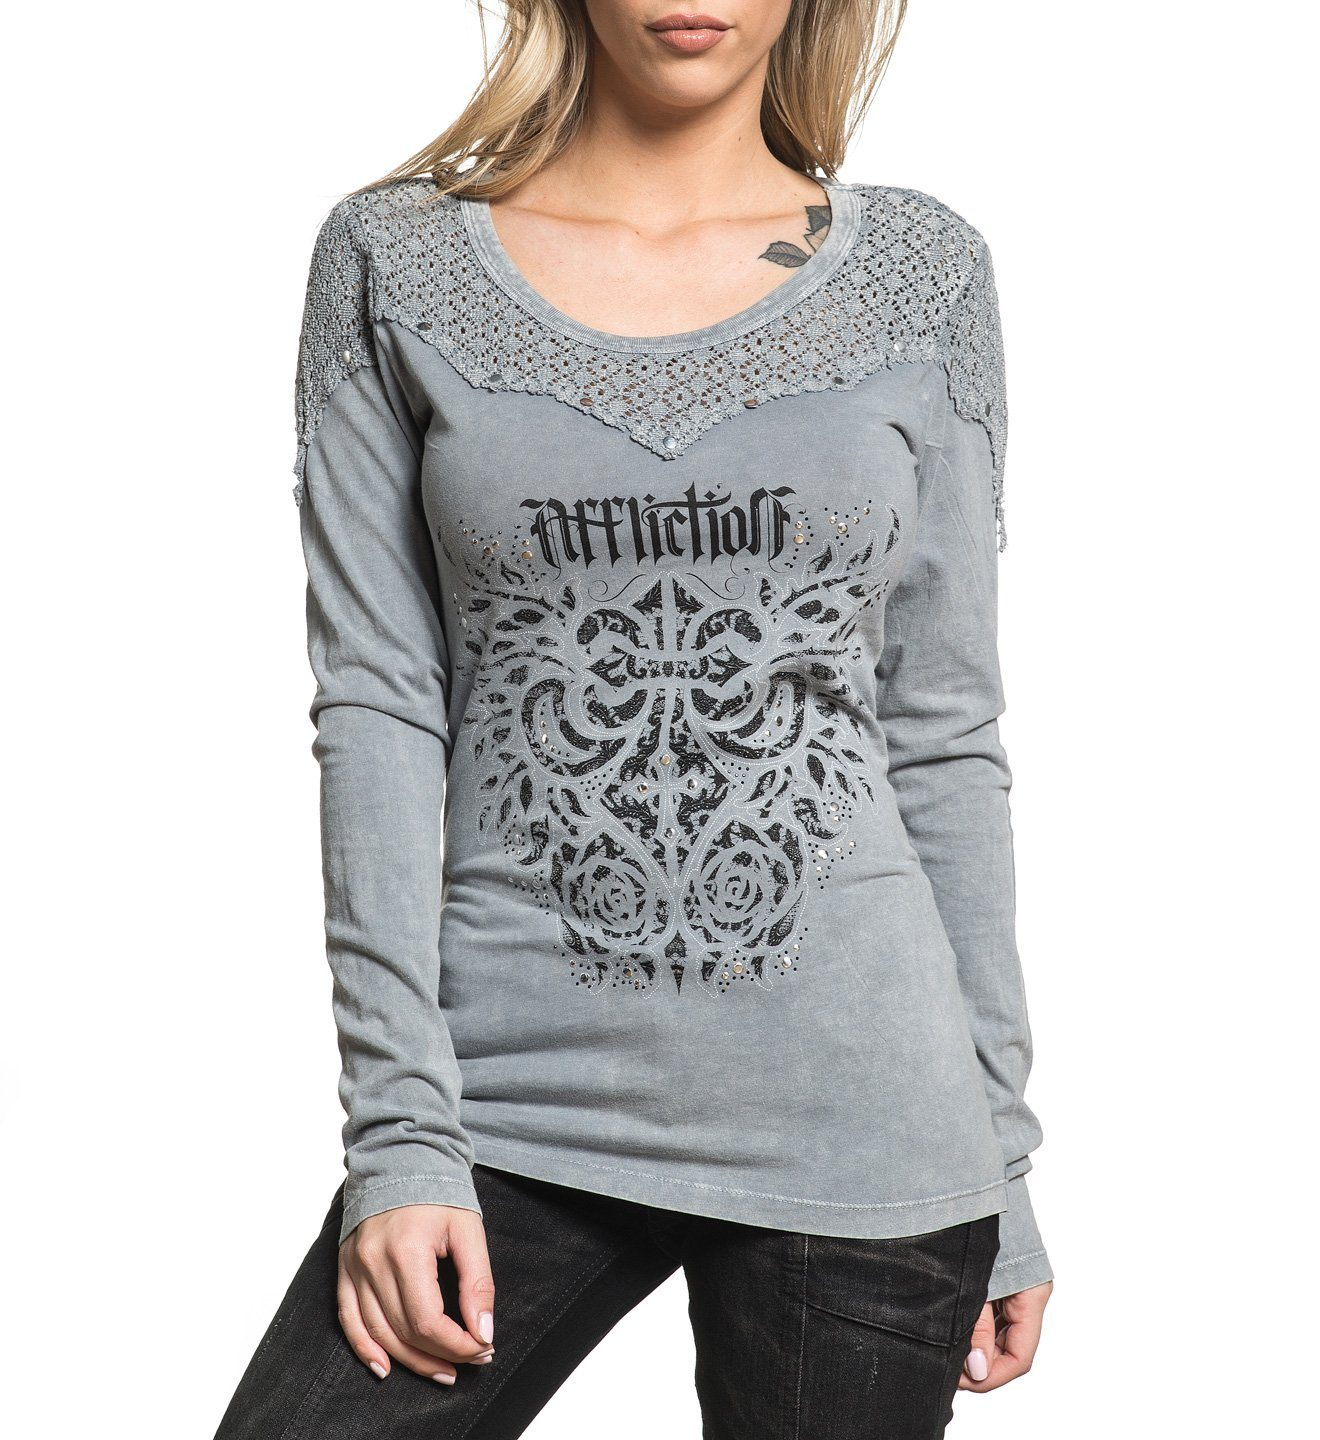 Womens Long Sleeve Tees - Sauvignon